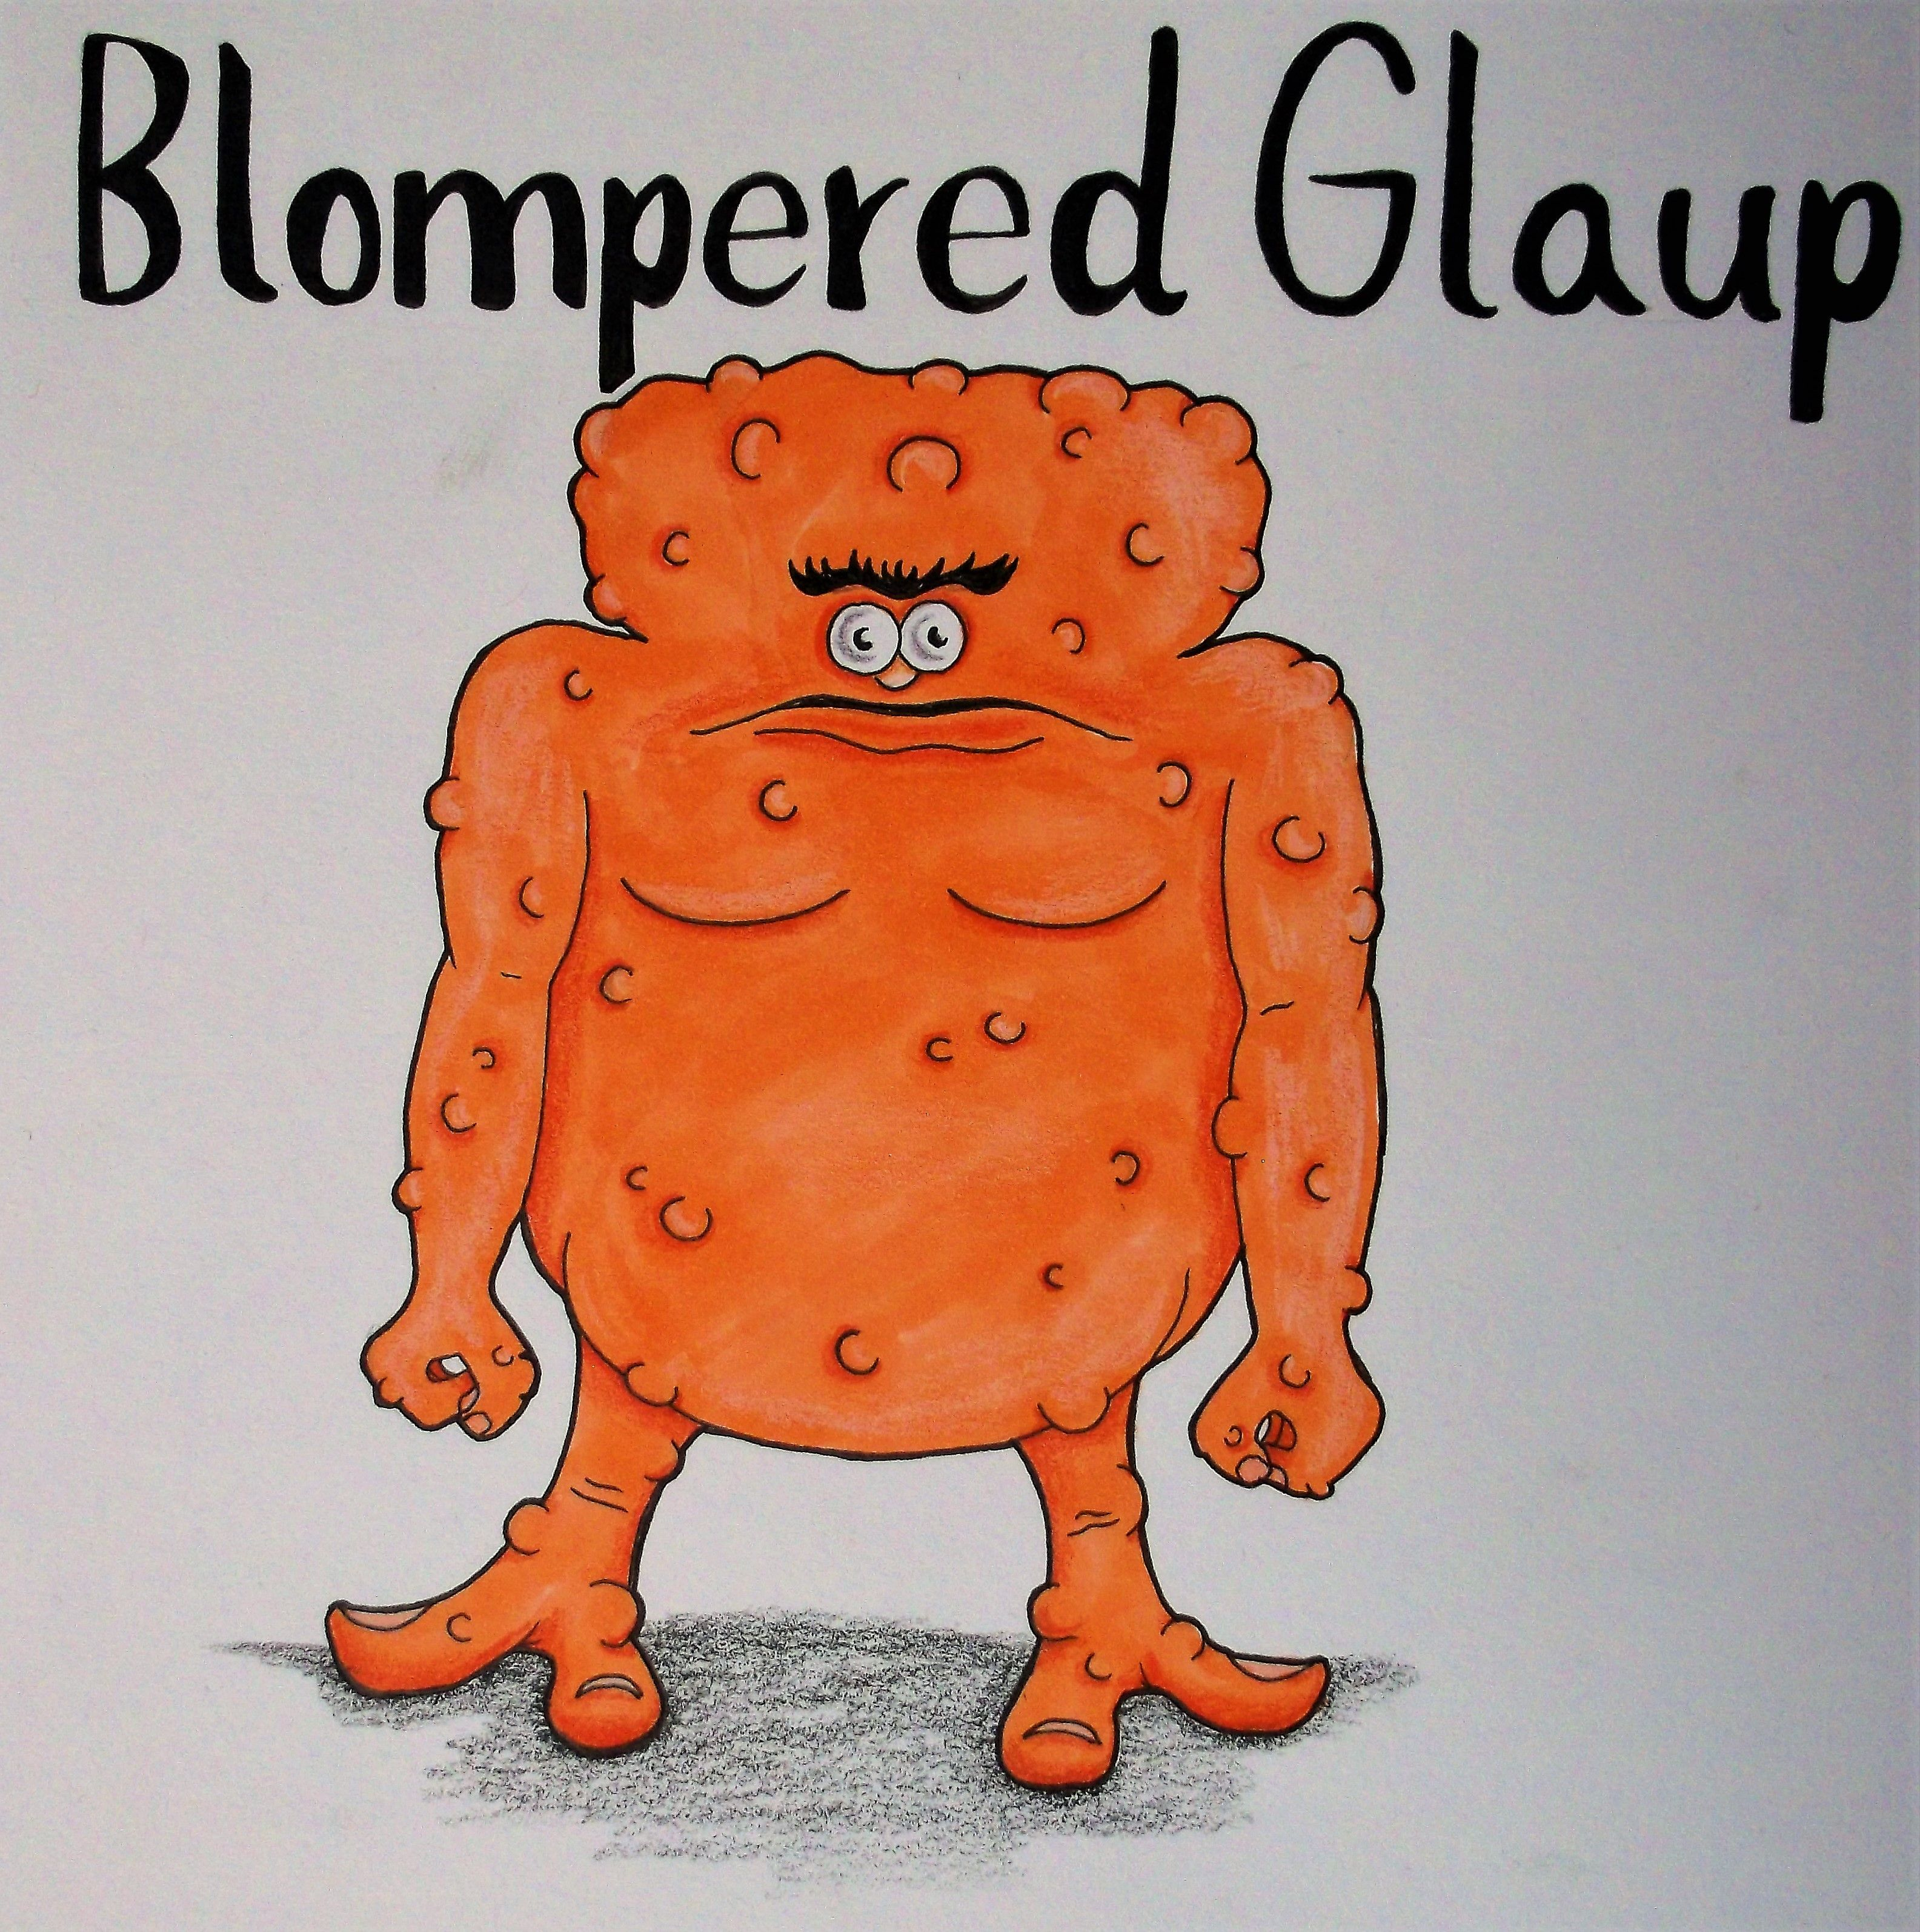 Flanimals Fanart Art Drawing Own Creation Blompered Glaup